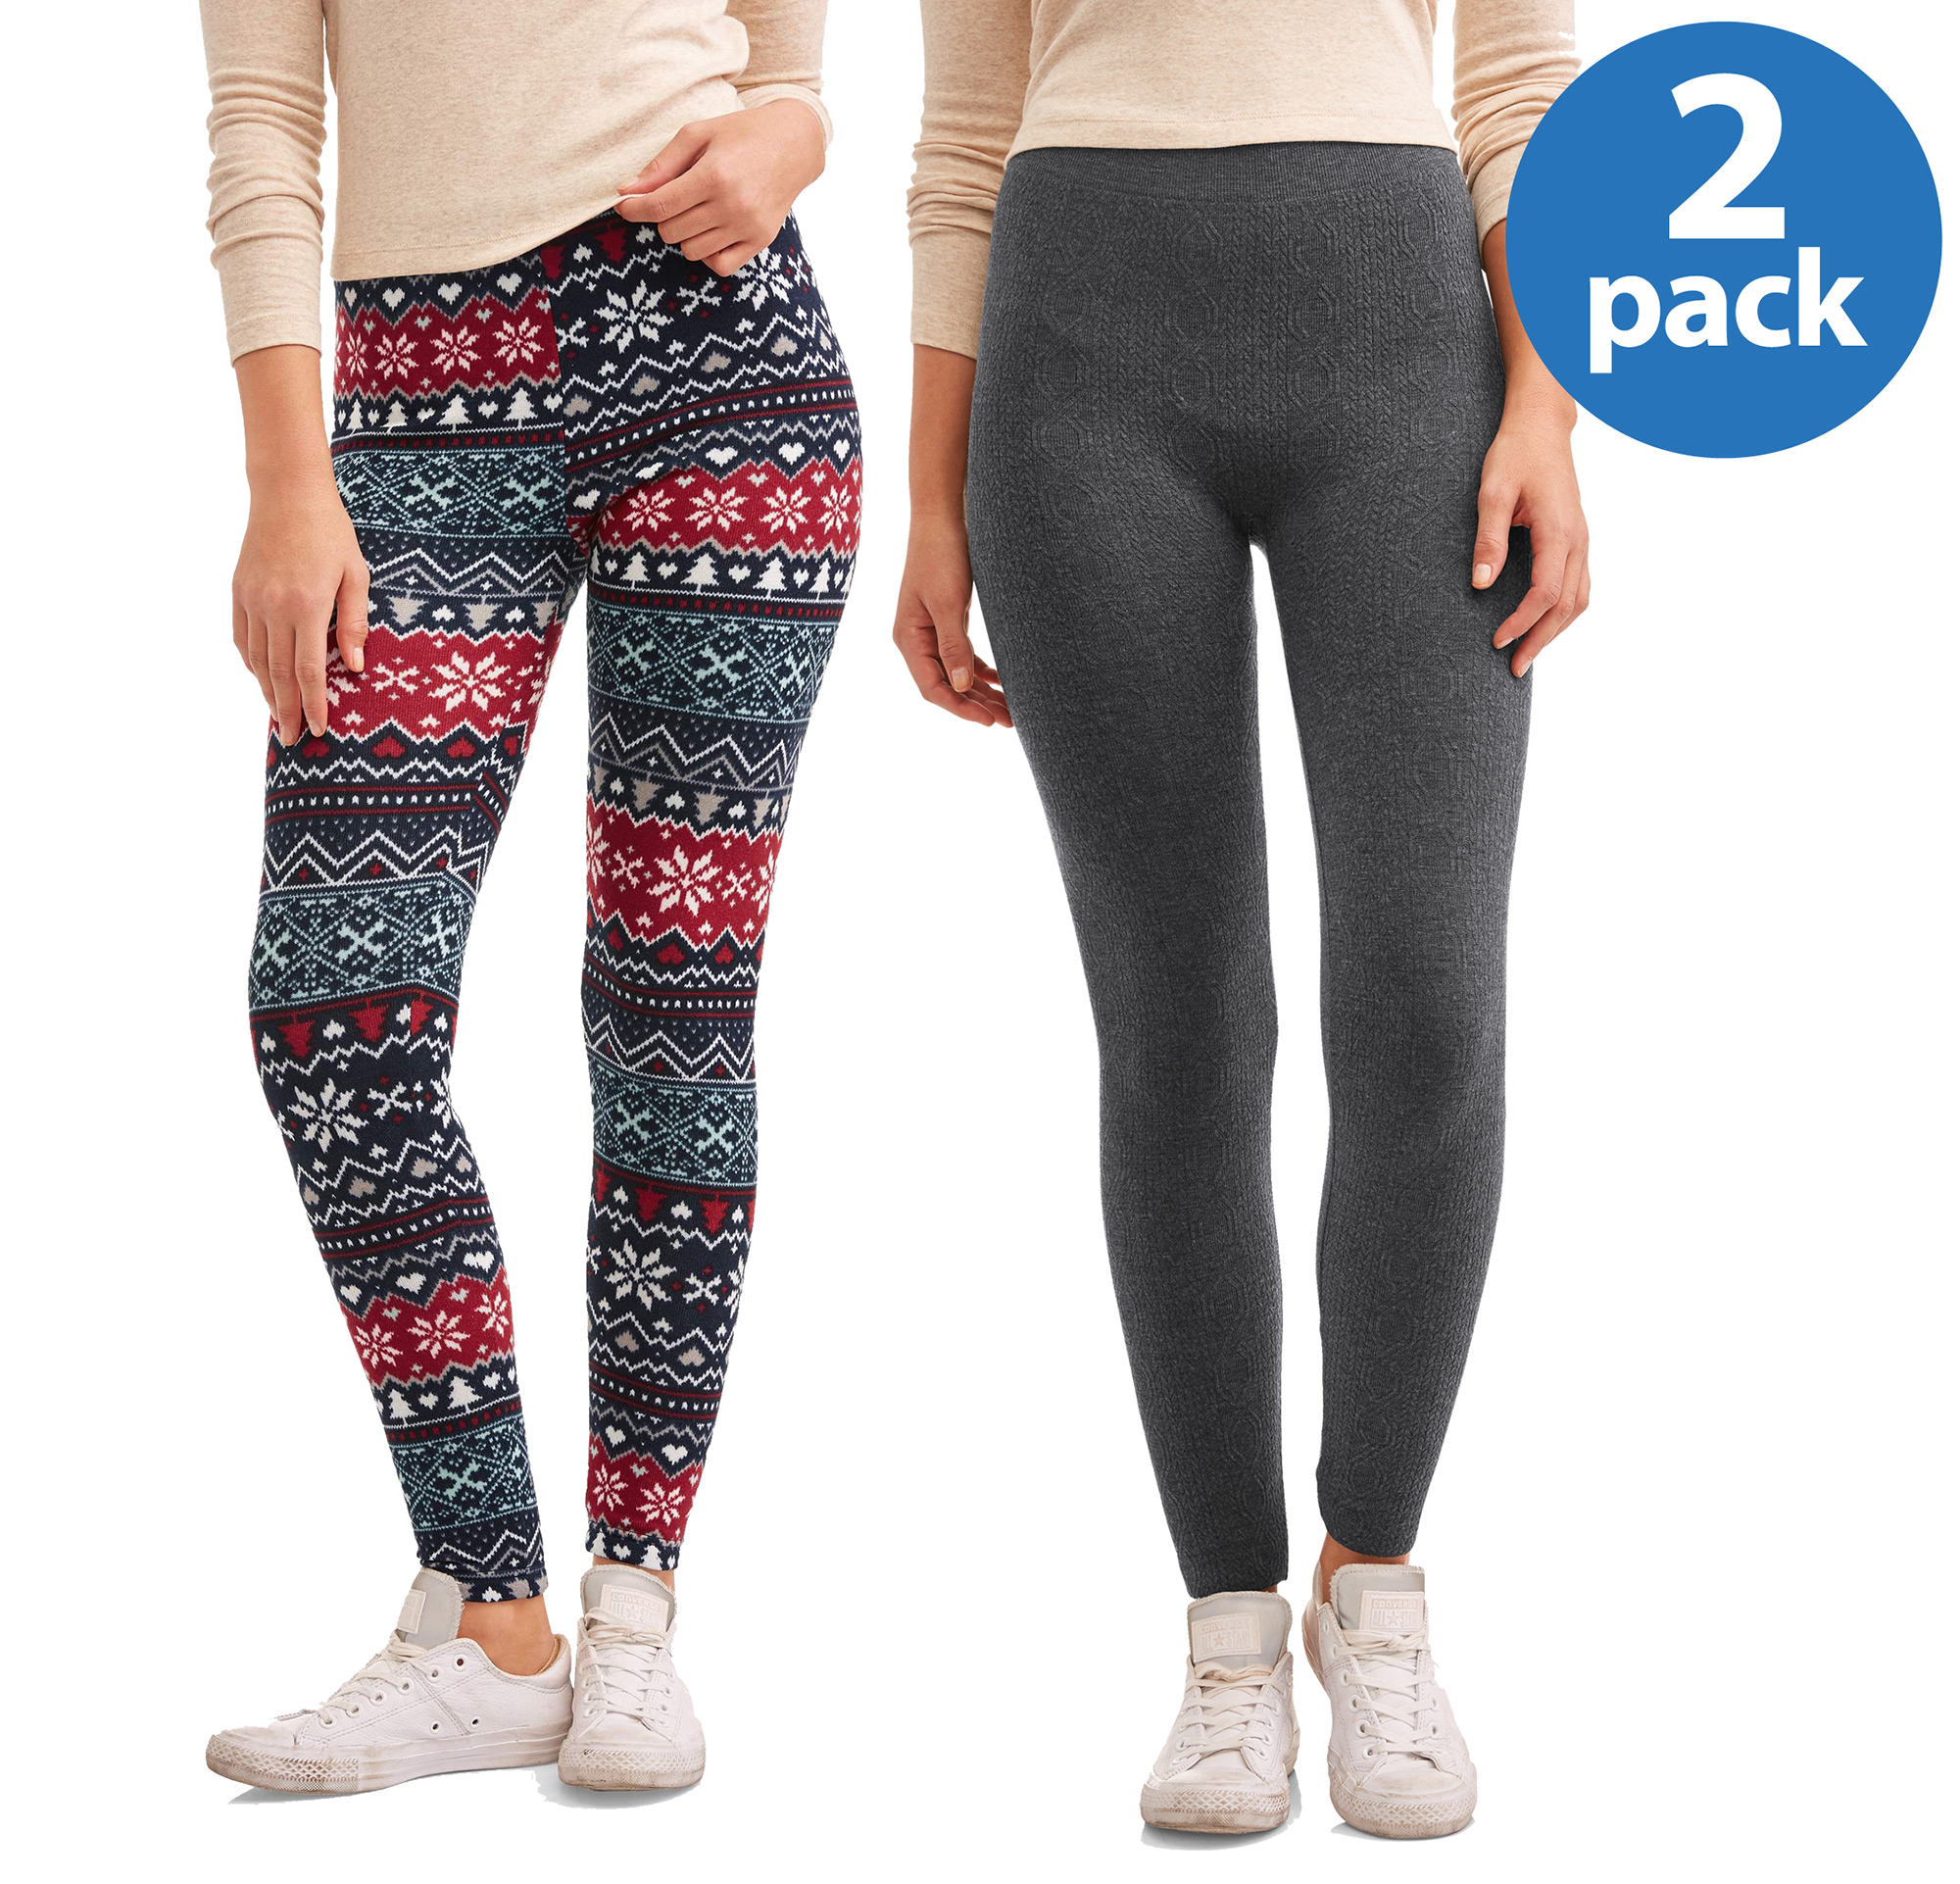 Faded Glory Women's 2 Pack Printed Legging Holiday Combo